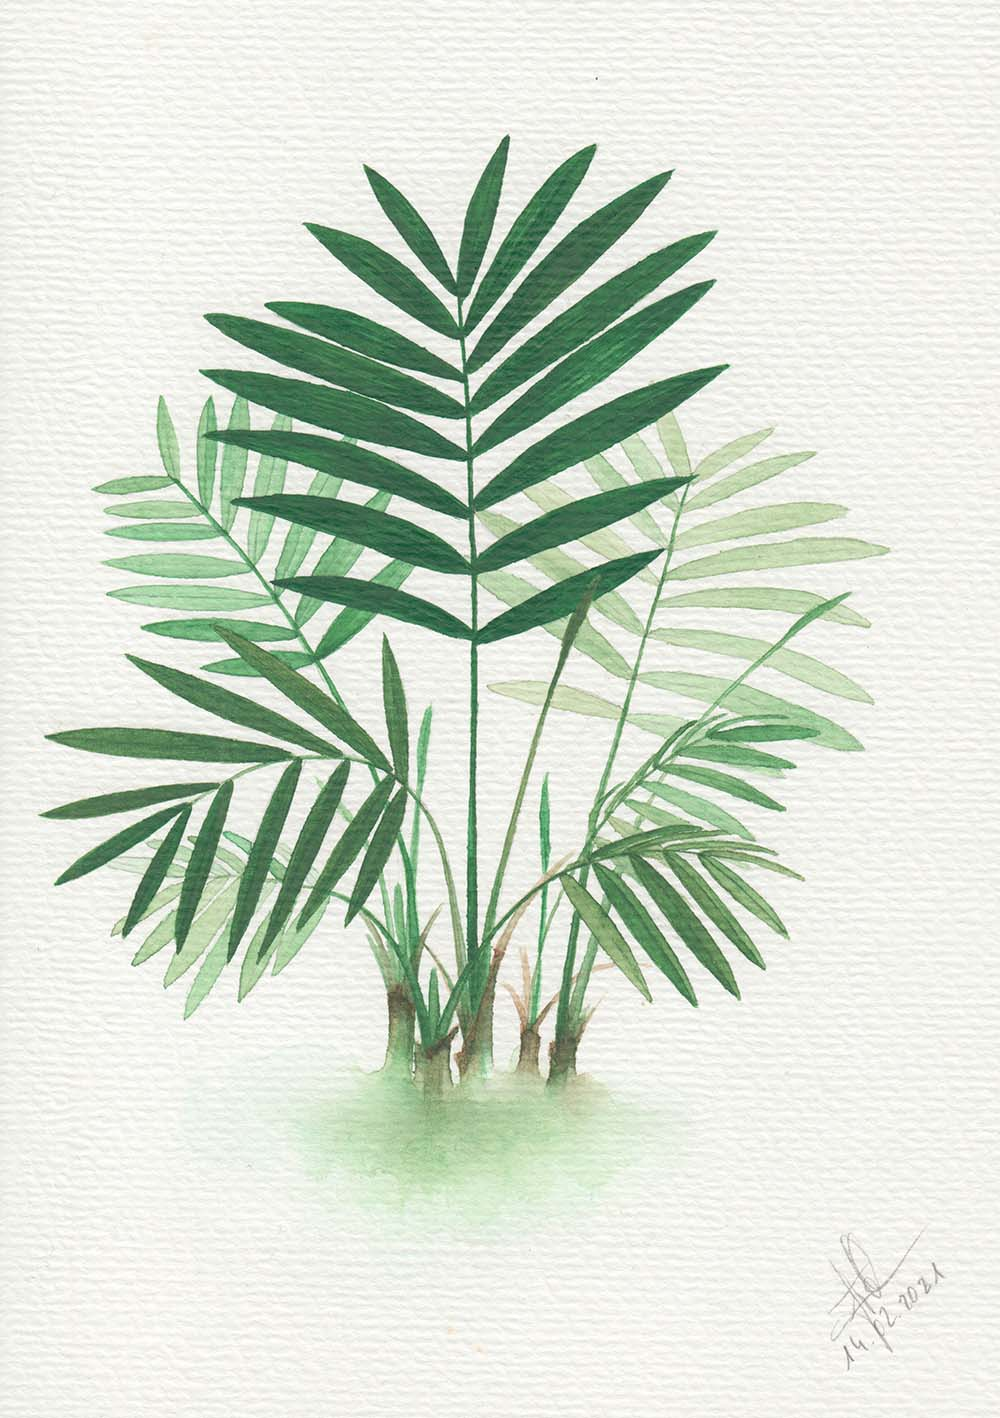 Parlor Palm Watercolor Painting